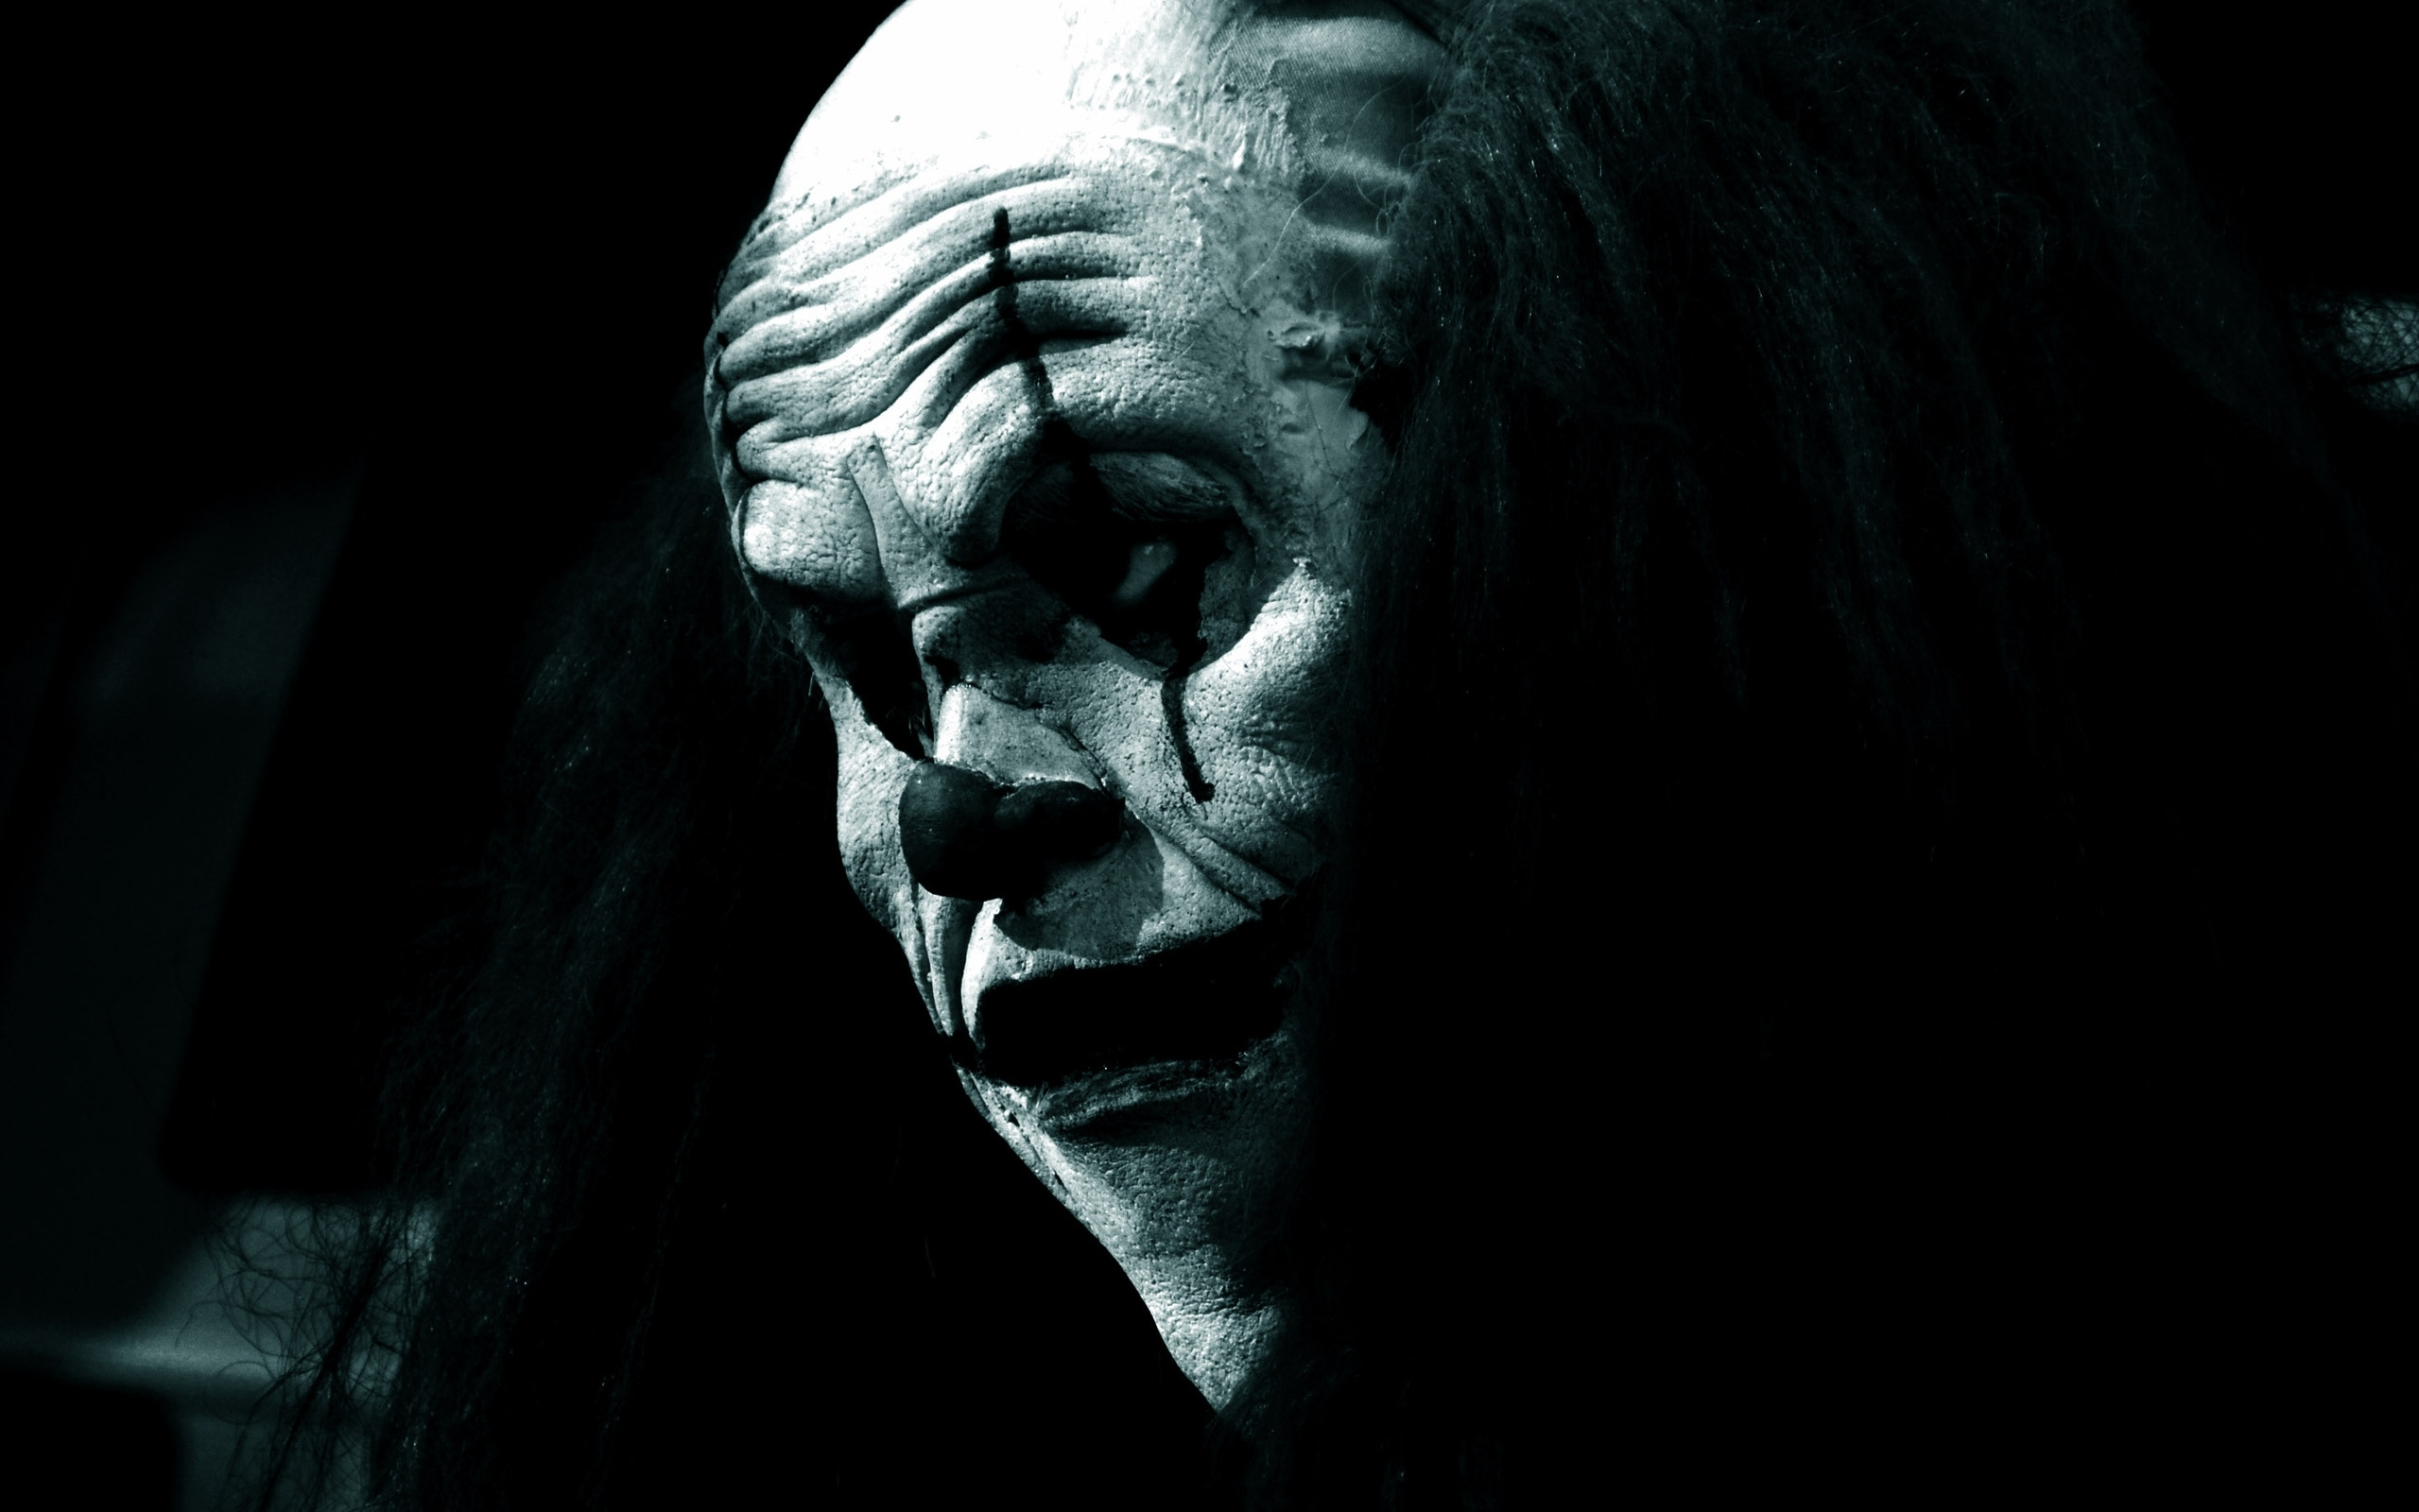 Title : scary clown wallpaper | scary clown wallpaper gothic. wallpapers 3d. Dimension : 2559 x 1600. File Type : JPG/JPEG